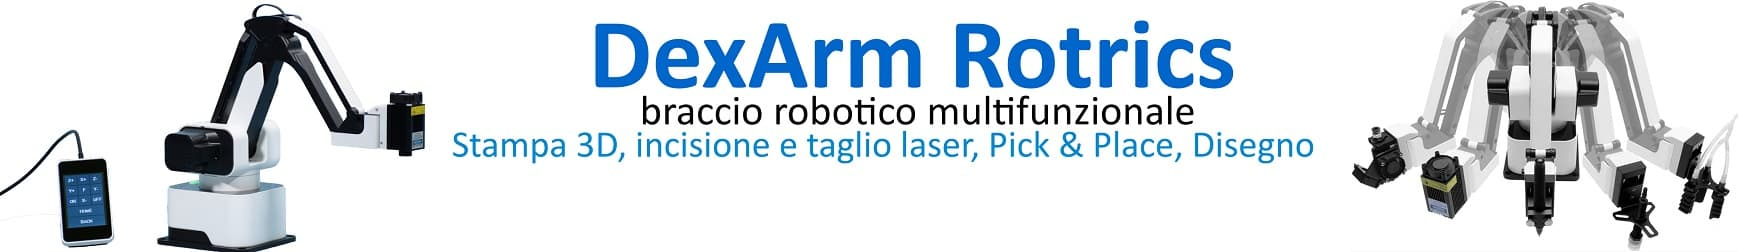 Robotic arm DexArm Rotrics